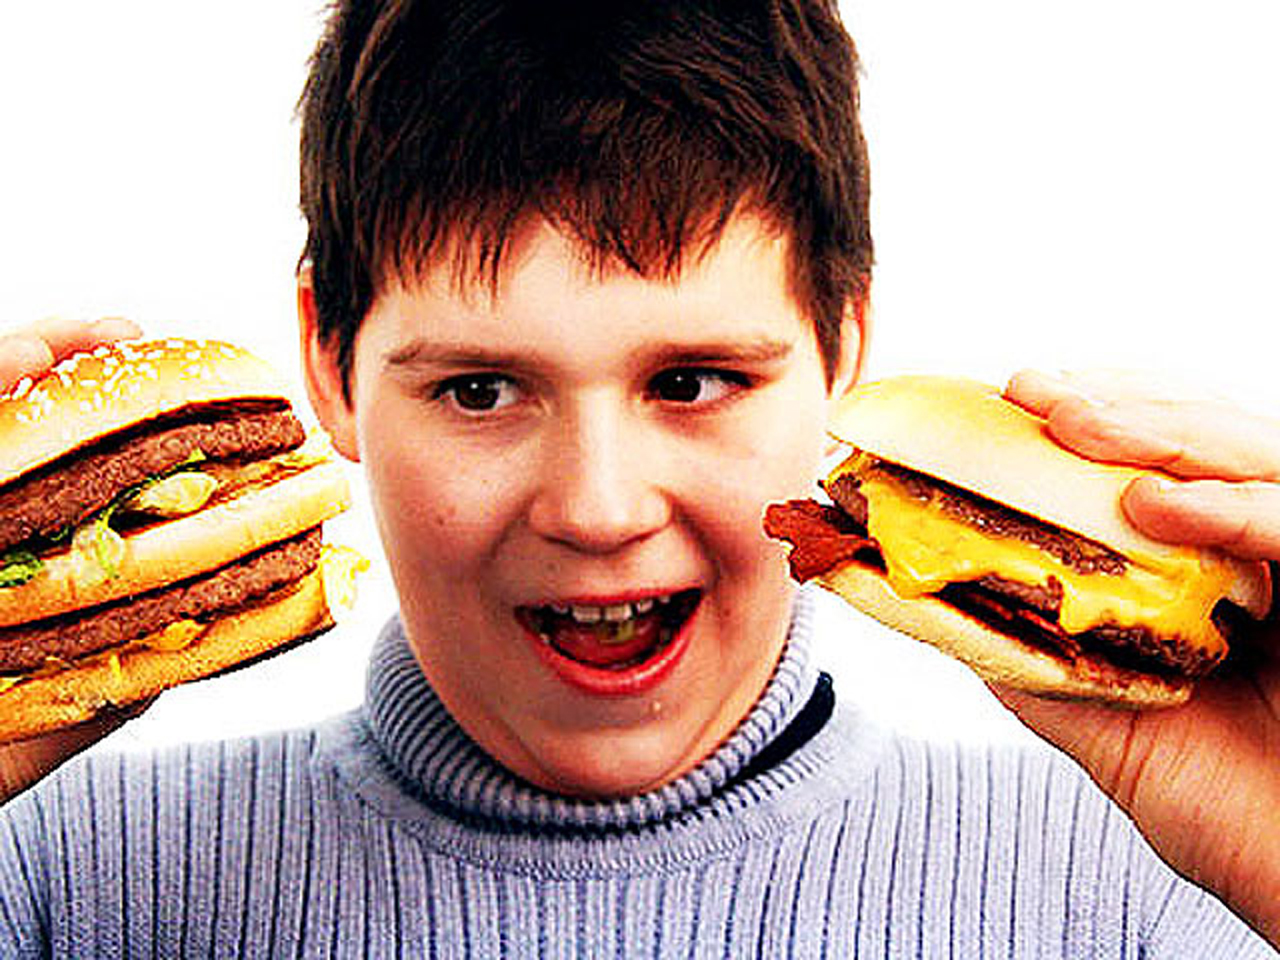 is fast food to blame for childhood obesity